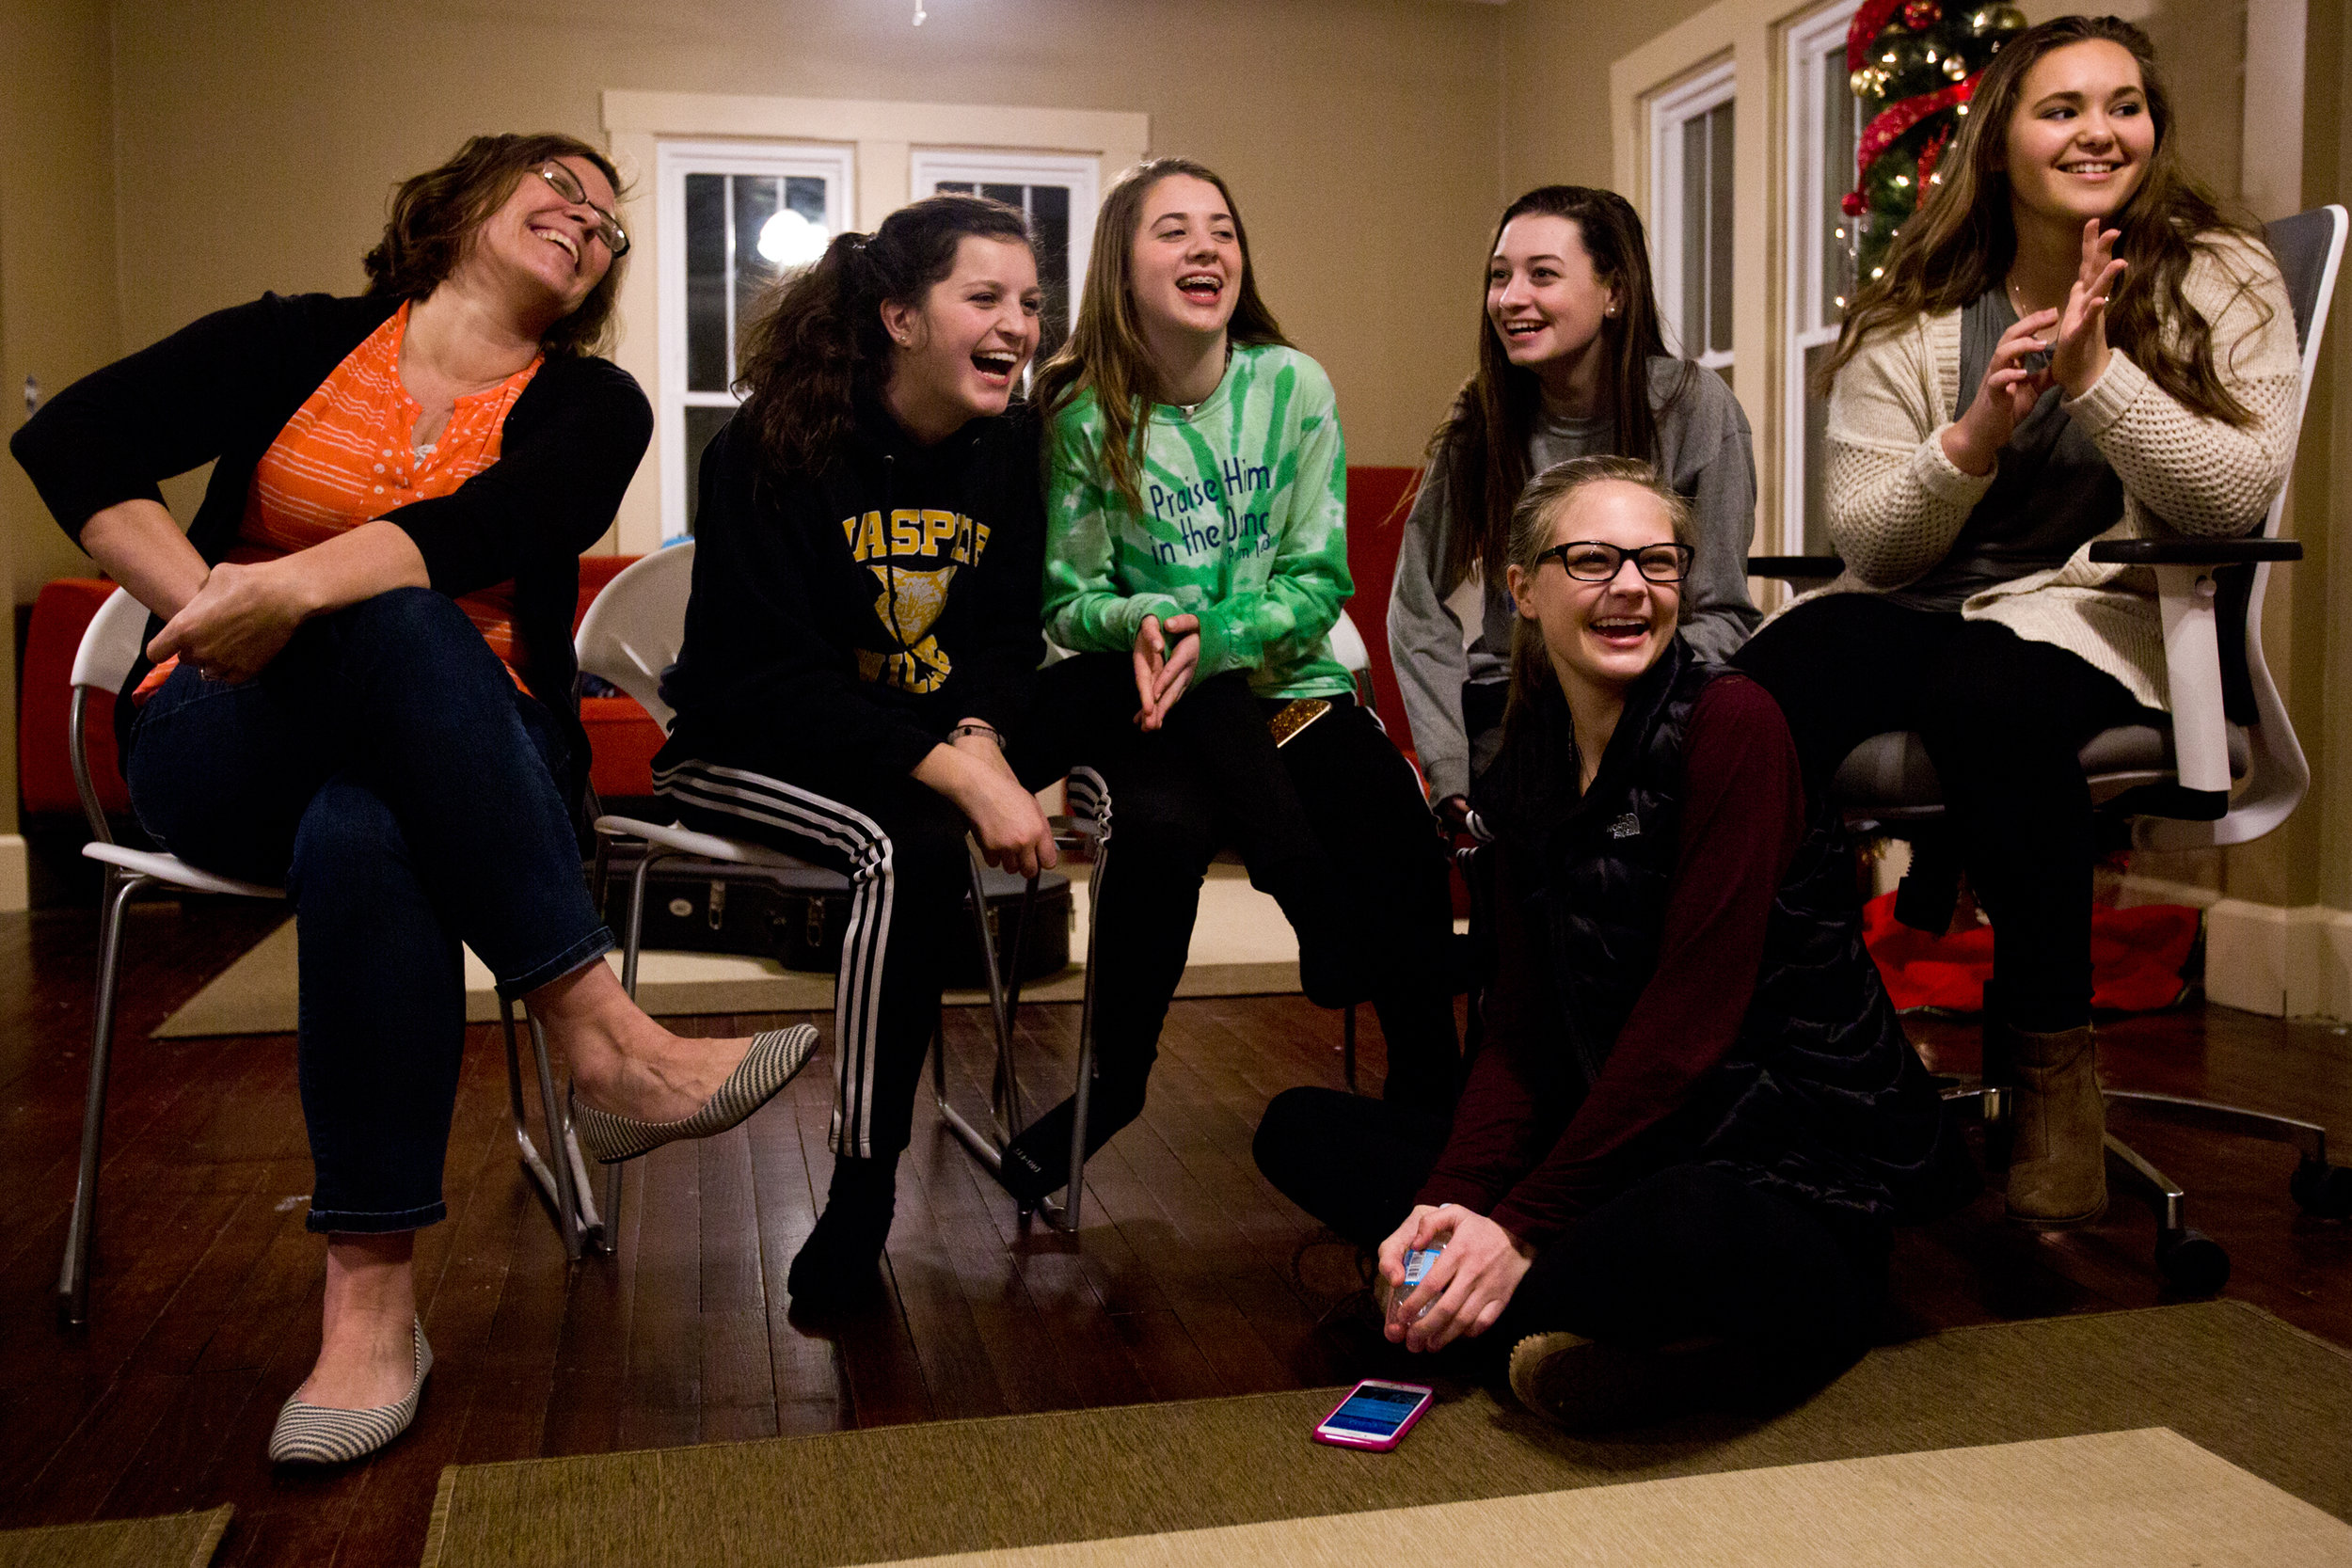 St. John Bosco Youth Ministry Director Angie Greulich, from left, Miah Bromm of Jasper, 15, Gemma Uebelhor of Ferdinand, 15, Chloe Lueken of Jasper, 17, Brianna Mehringer of Jasper, 16, and Madeline Springer of Jasper, 15, played a game during the ministry's Sunday evening gathering at the Bosco House in Jasper. Greulich led a group of high school-aged youth in putting together activities and a time of meditation to help them connect and grow.